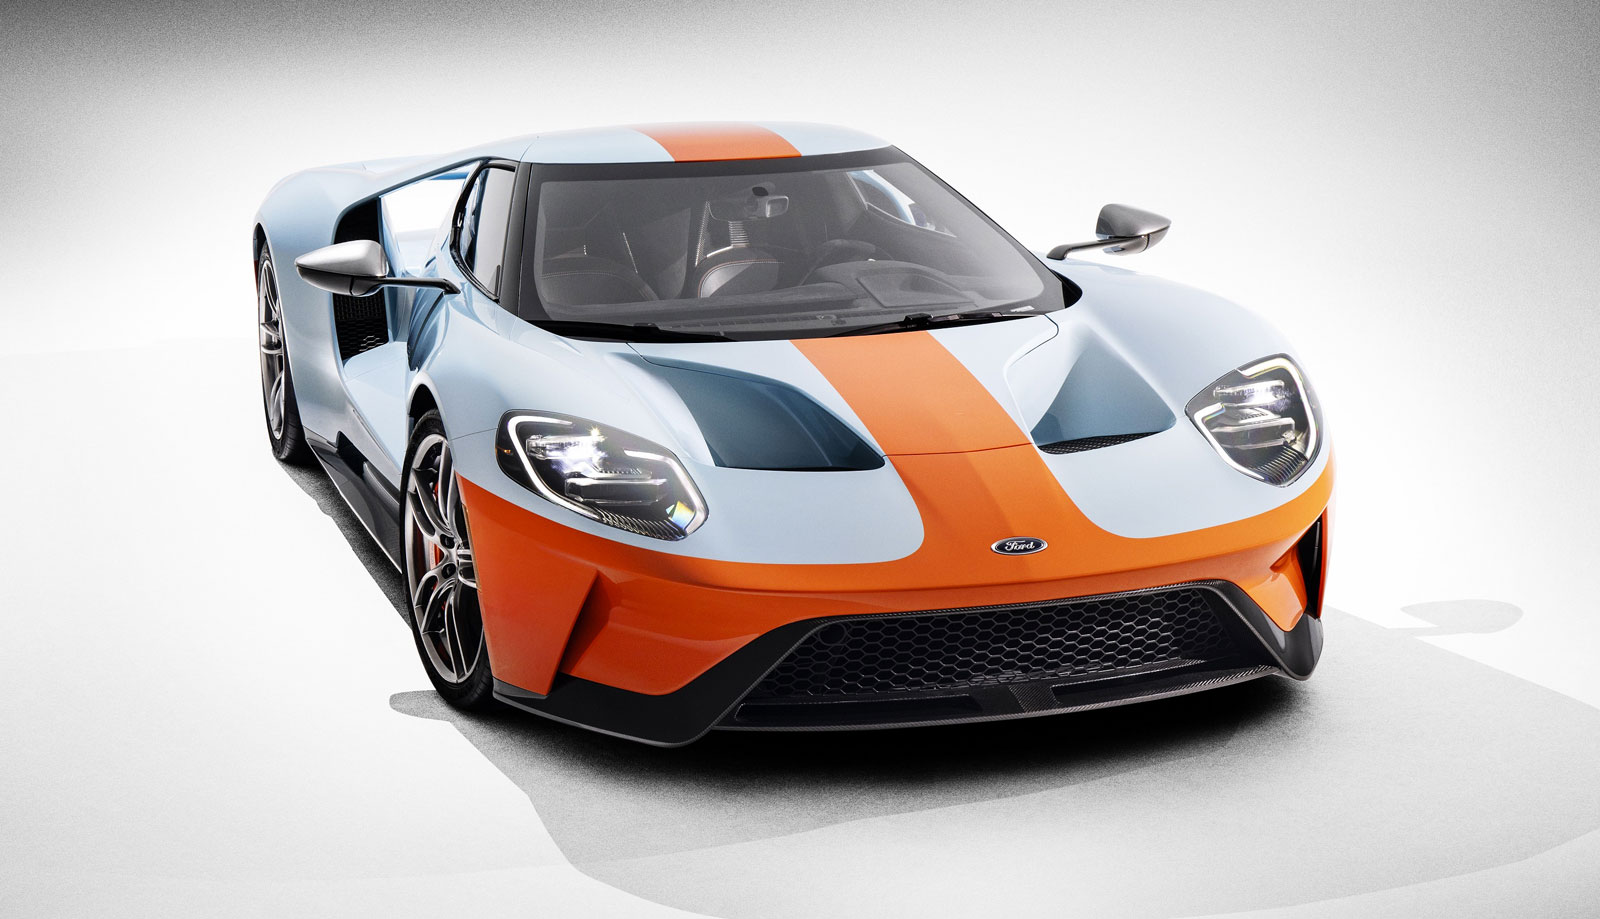 Ford GT Heritage Edition model celebrates the 50th anniversary